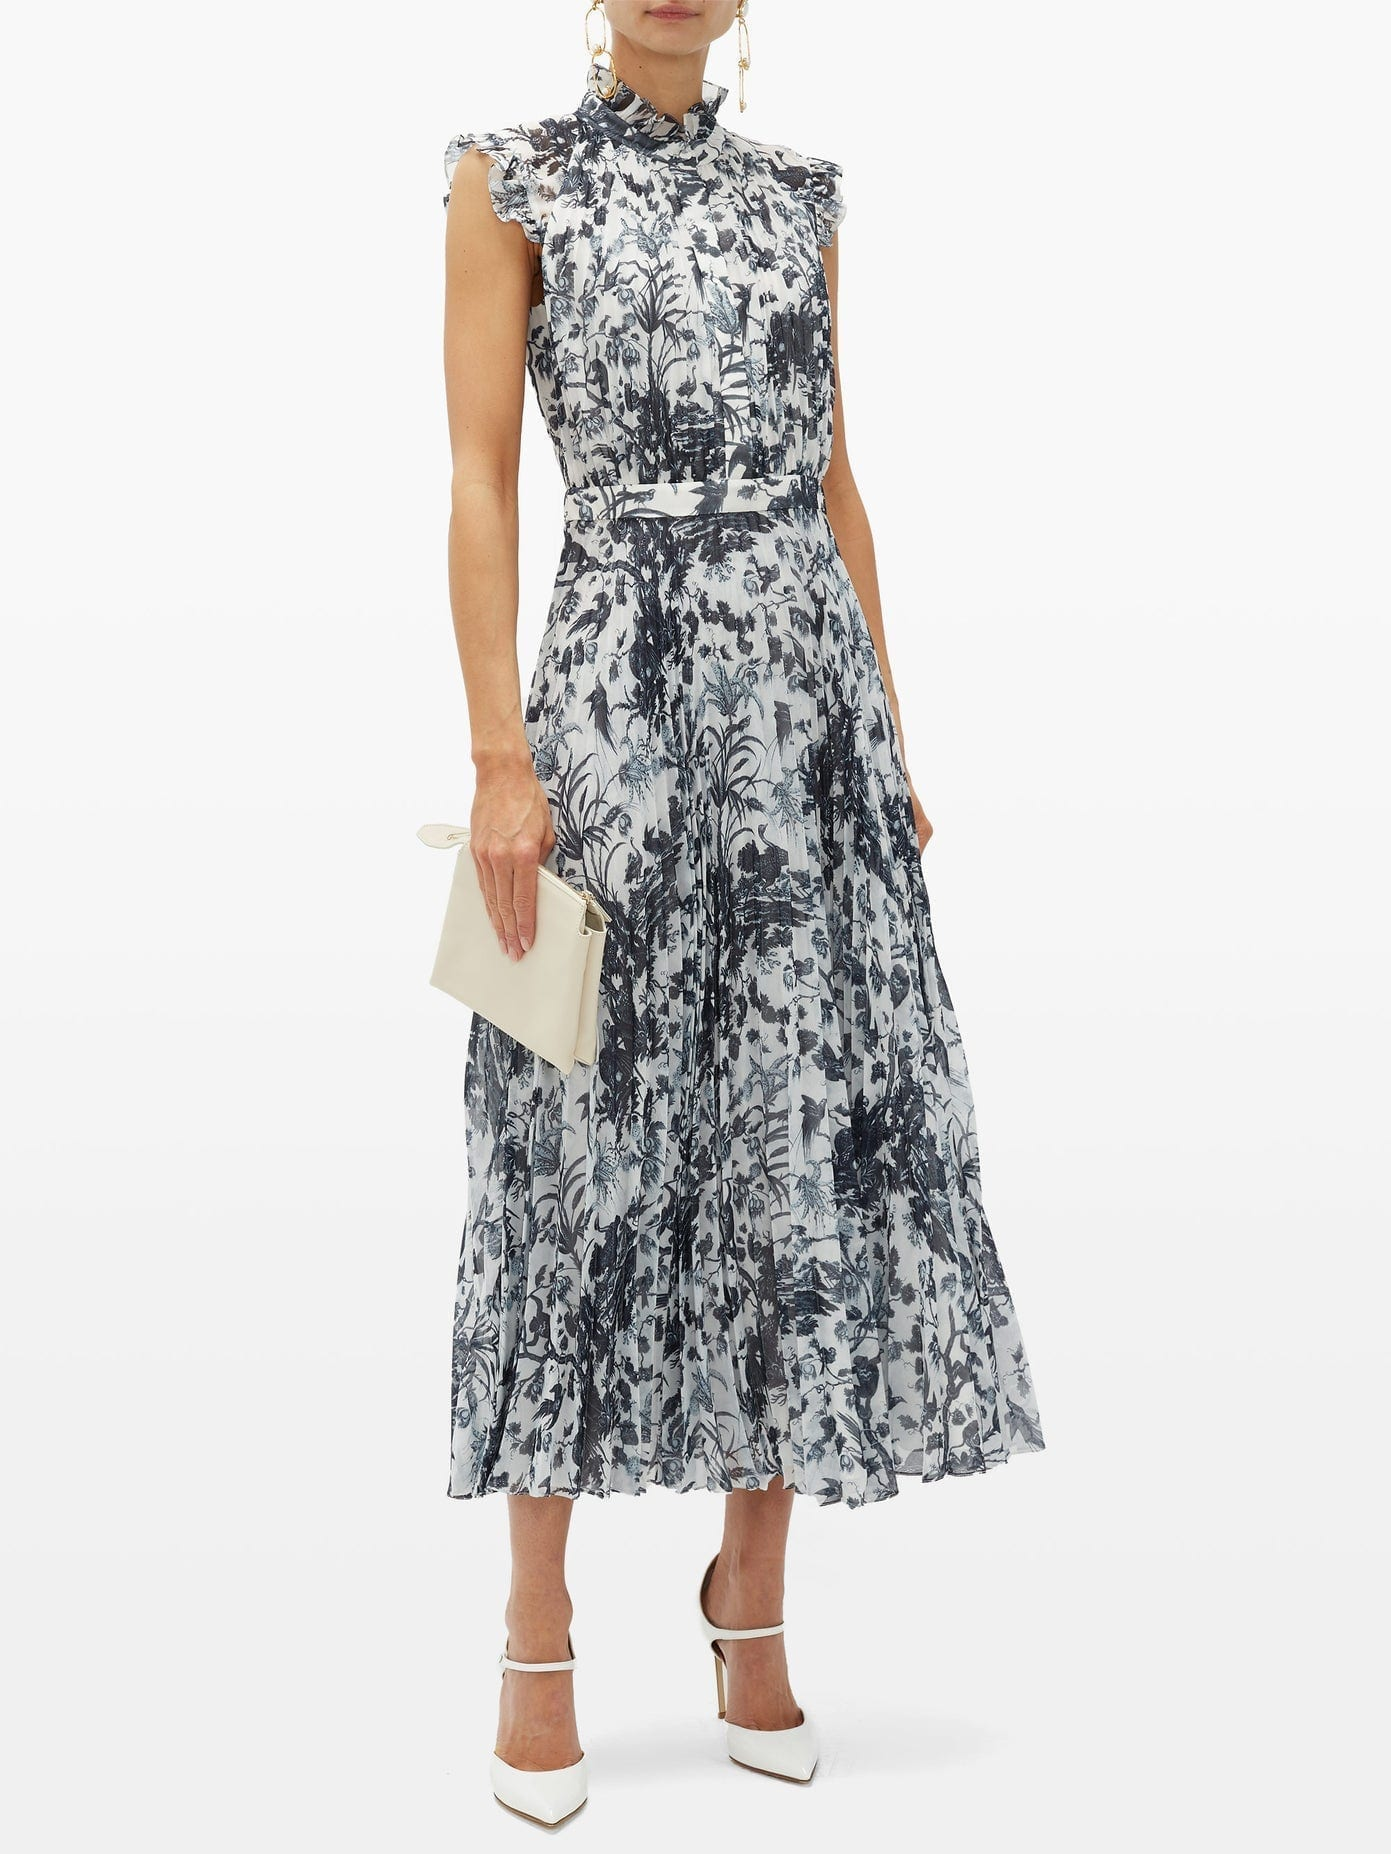 ERDEM Roisin Frida Toile De Jouy-print Voile Dress